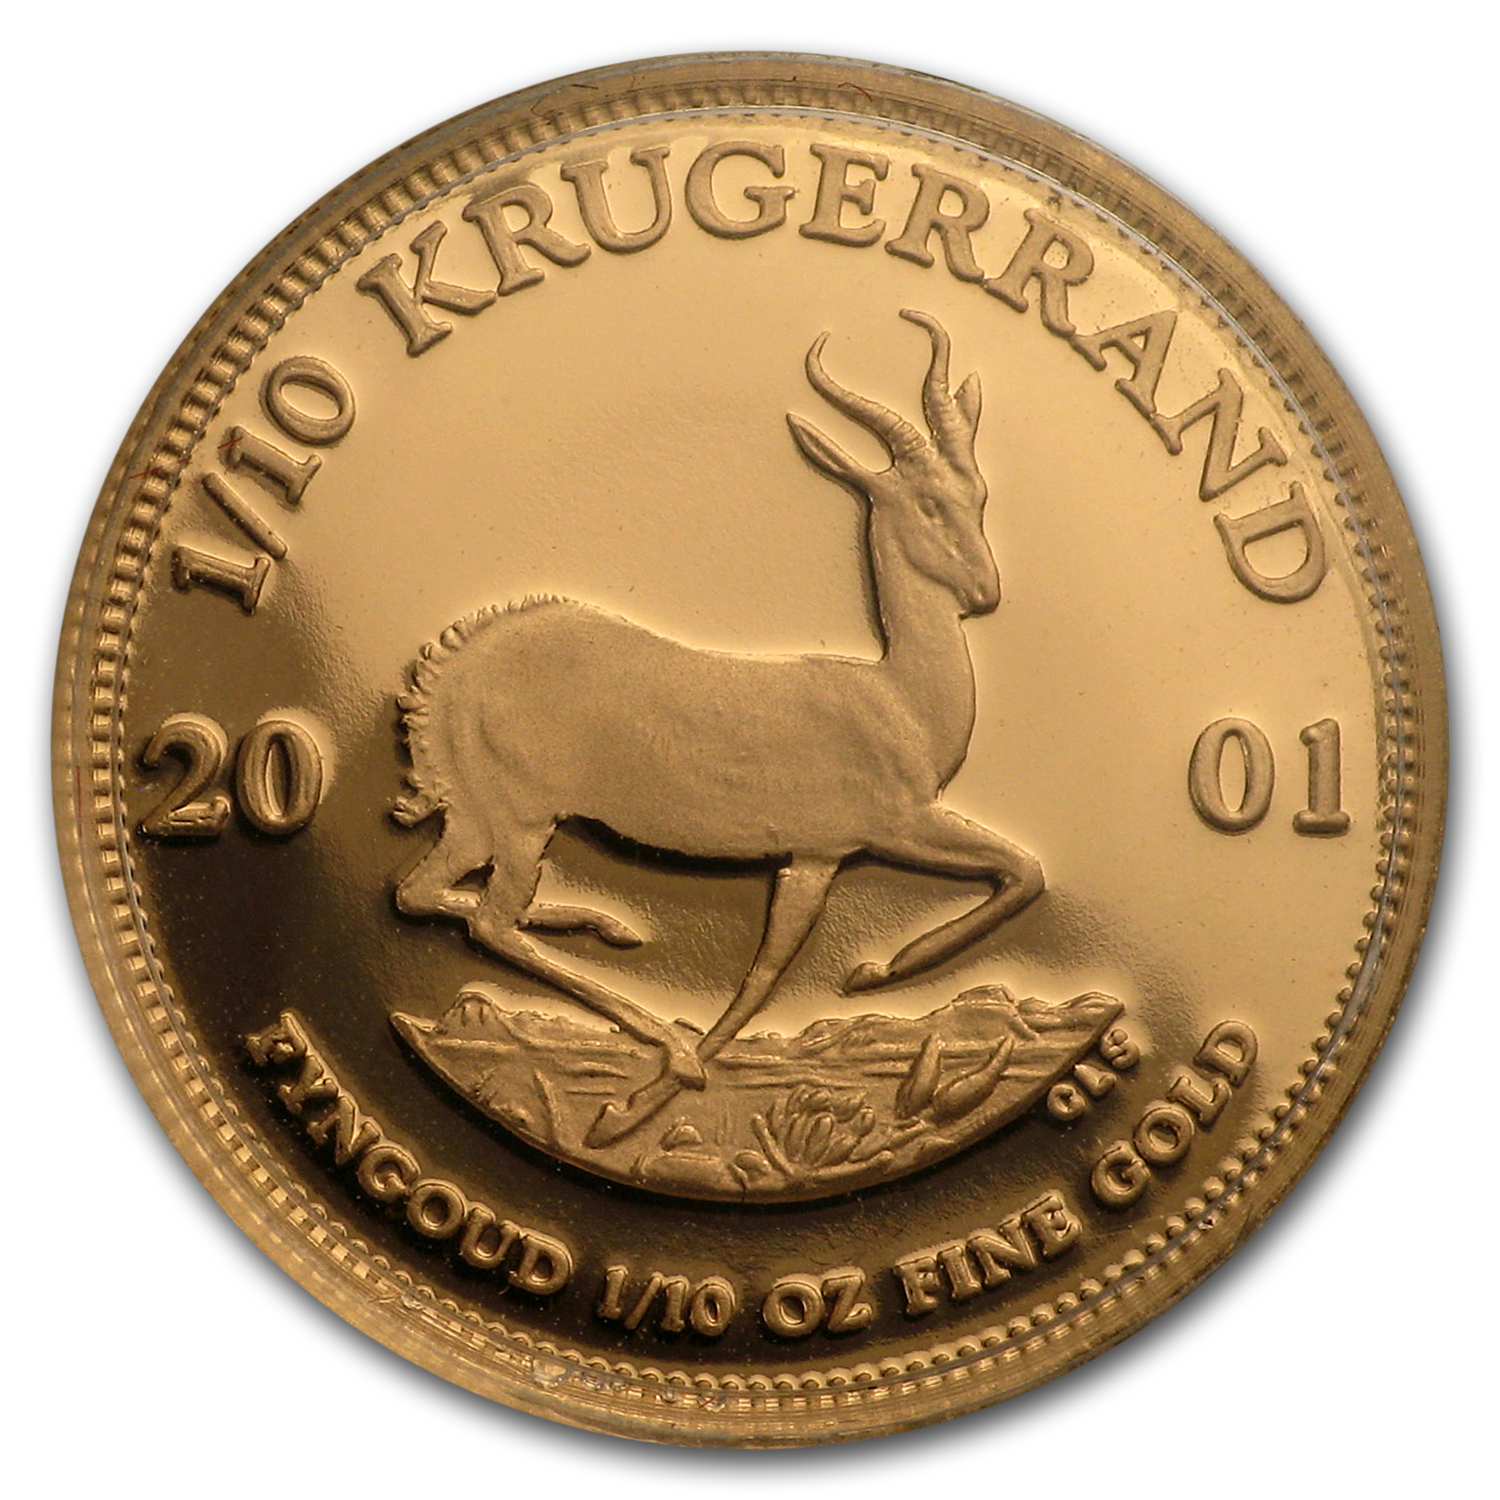 2001 South Africa 1/10 oz Proof Gold Krugerrand